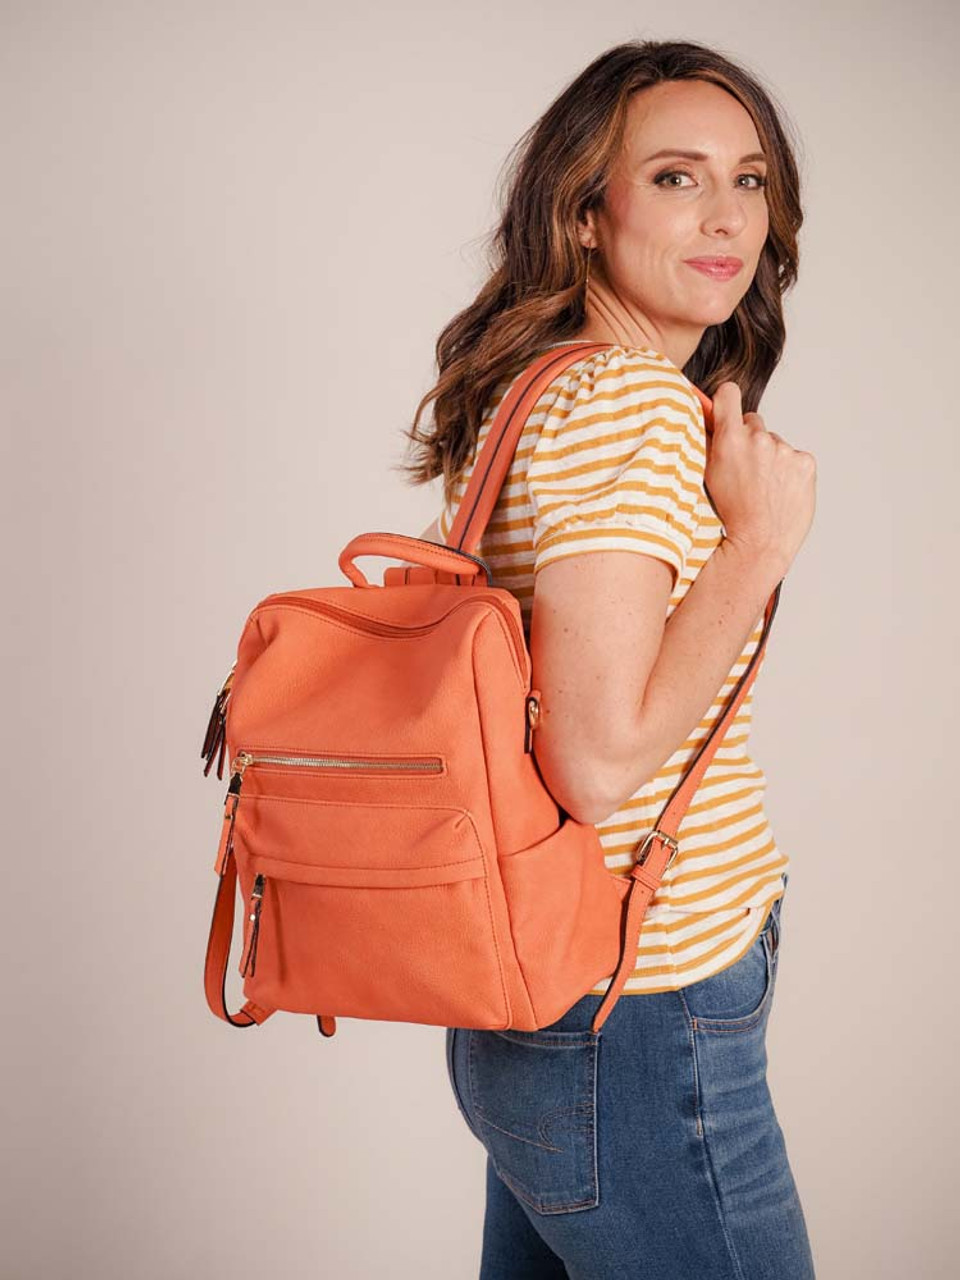 Convertible vegan leather backpack with handle at top, adjustable shoulder straps, and removable multi-color southwest geometric print guitar strap. Zipper close at top, 2 zipper pockets on front, slip pockets on sides, and zipper pocket on back. Interior is fully lined and has one zipper pocket and two slip pockets.